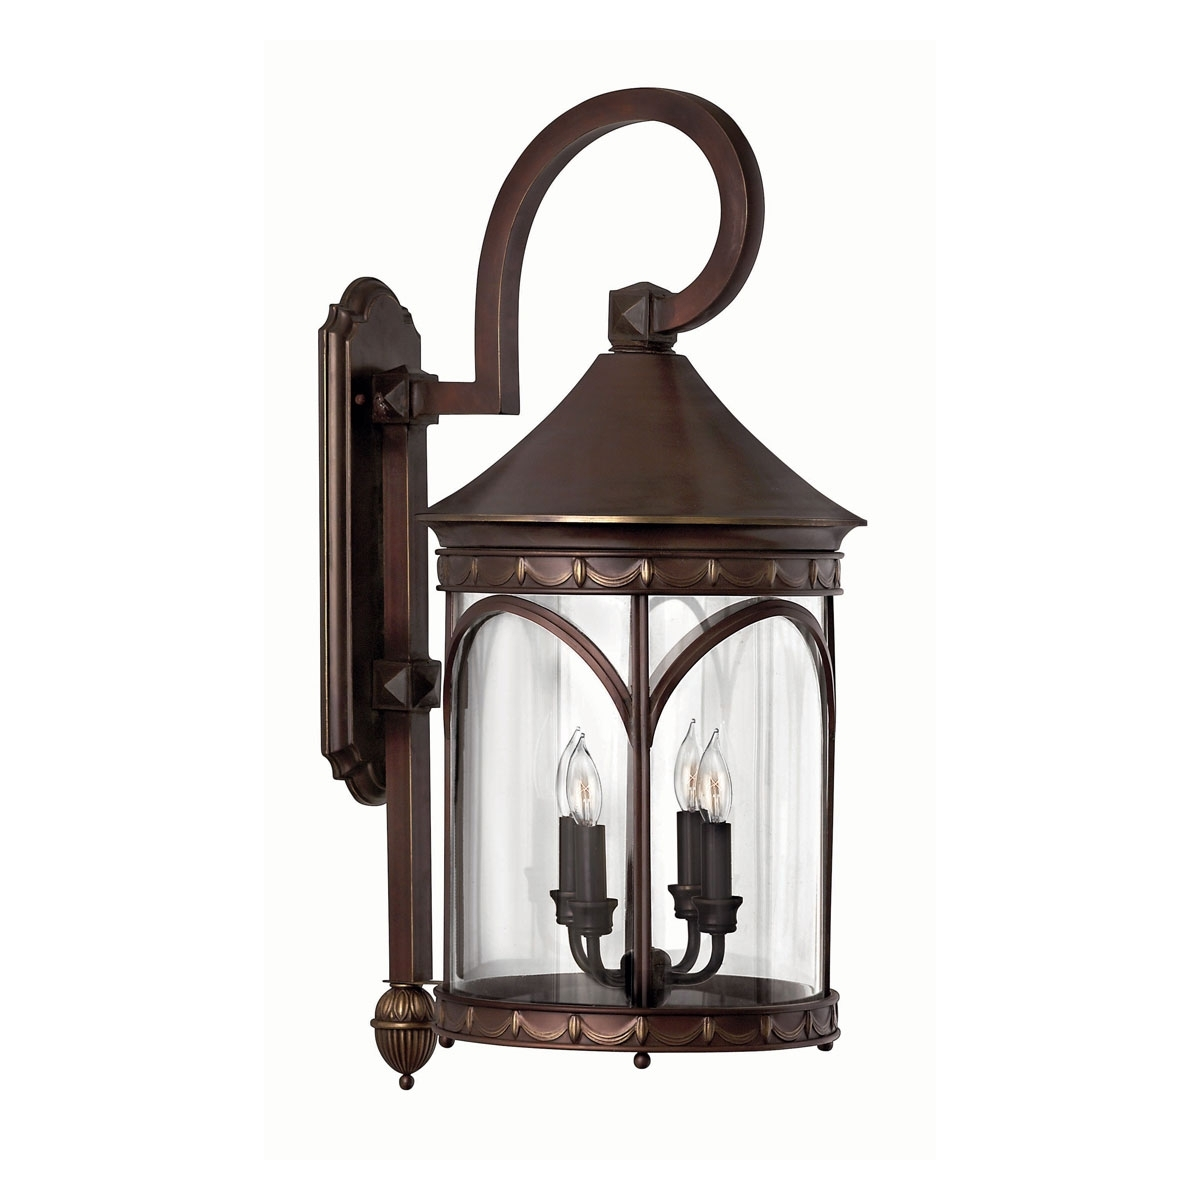 Hinkley Outdoor Ceiling Lights Regarding Latest 2315cb – Large Wall Outdoor Light, 30 Inch, Lucerne Copper Bronze (View 18 of 20)